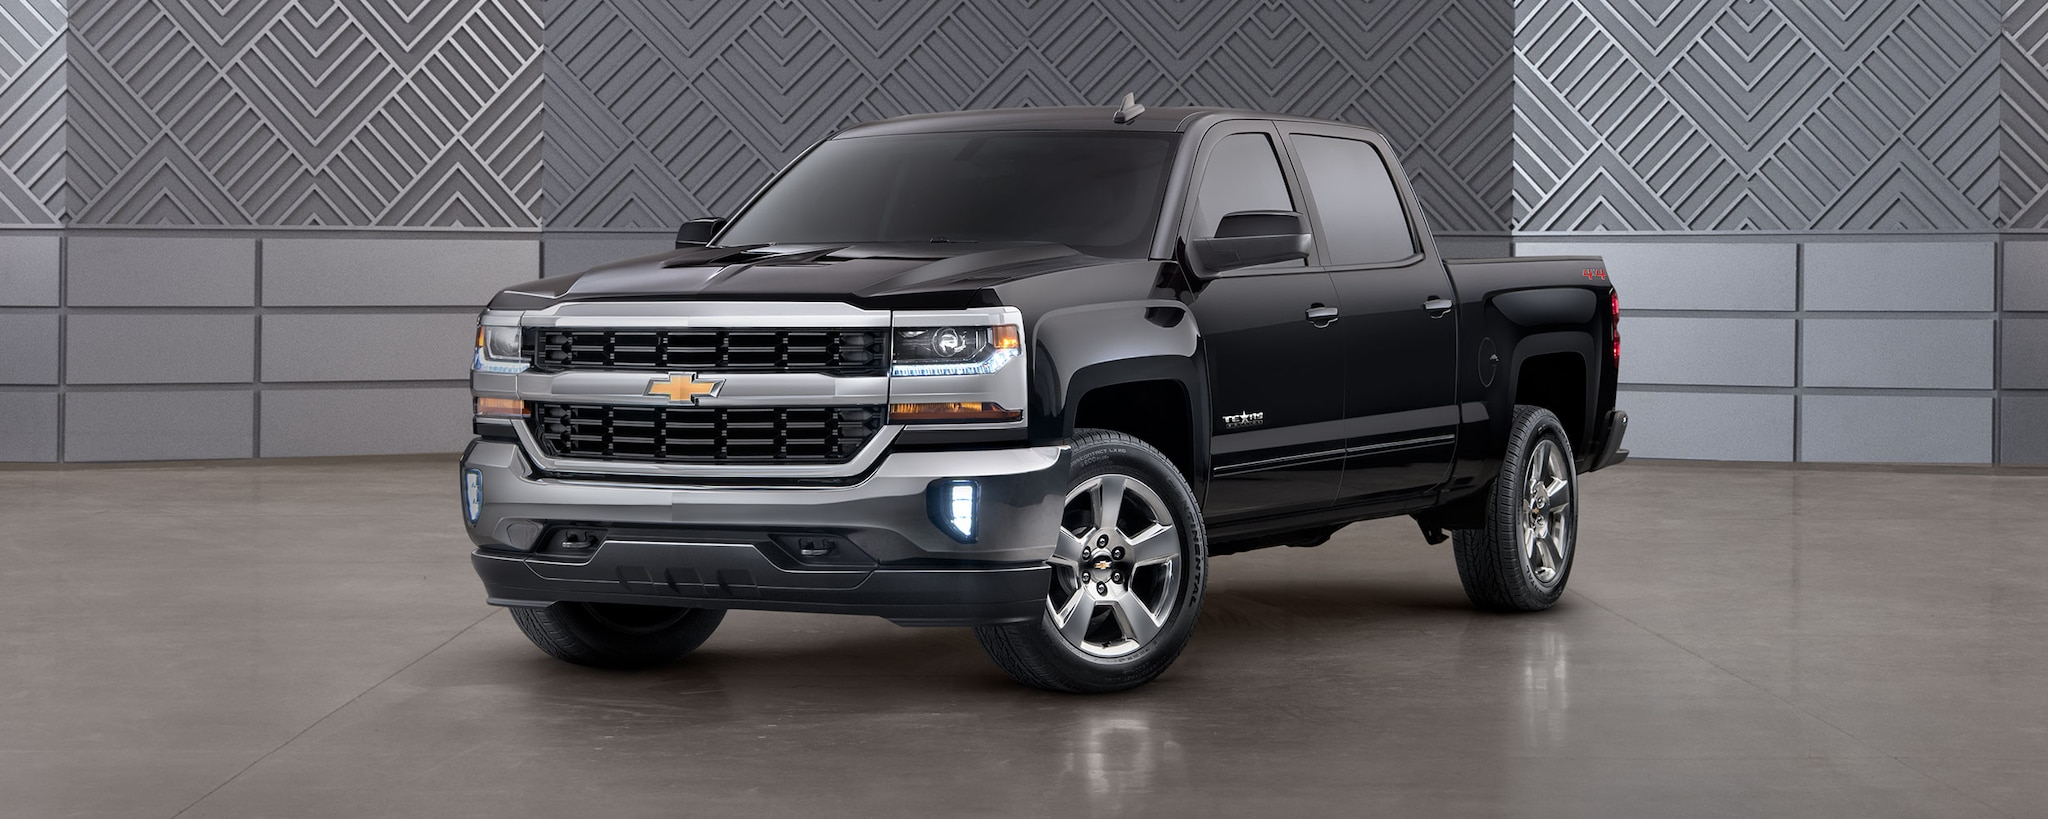 Plan Advanced Lease Protection de Chevrolet